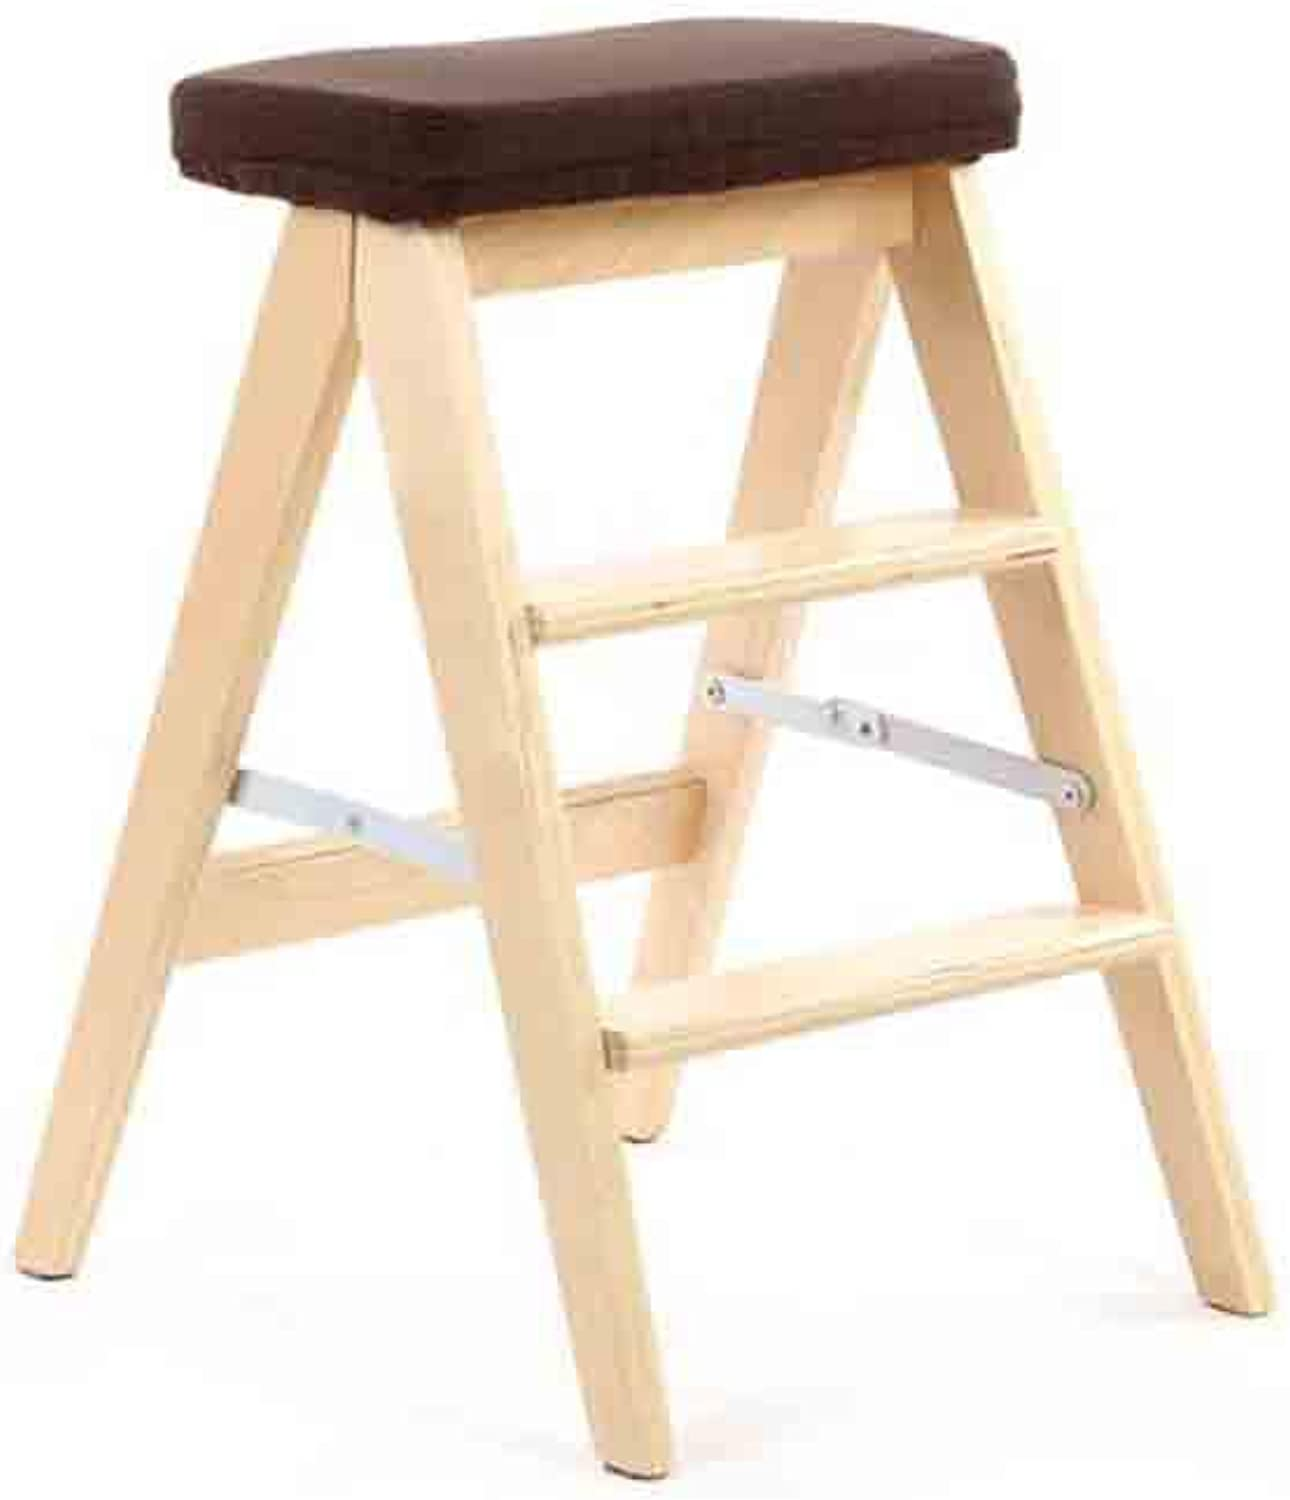 SUNNY Folding Ladder Stool, Multi-Function Wooden Stool, Detachable Cloth Cover (color   4)